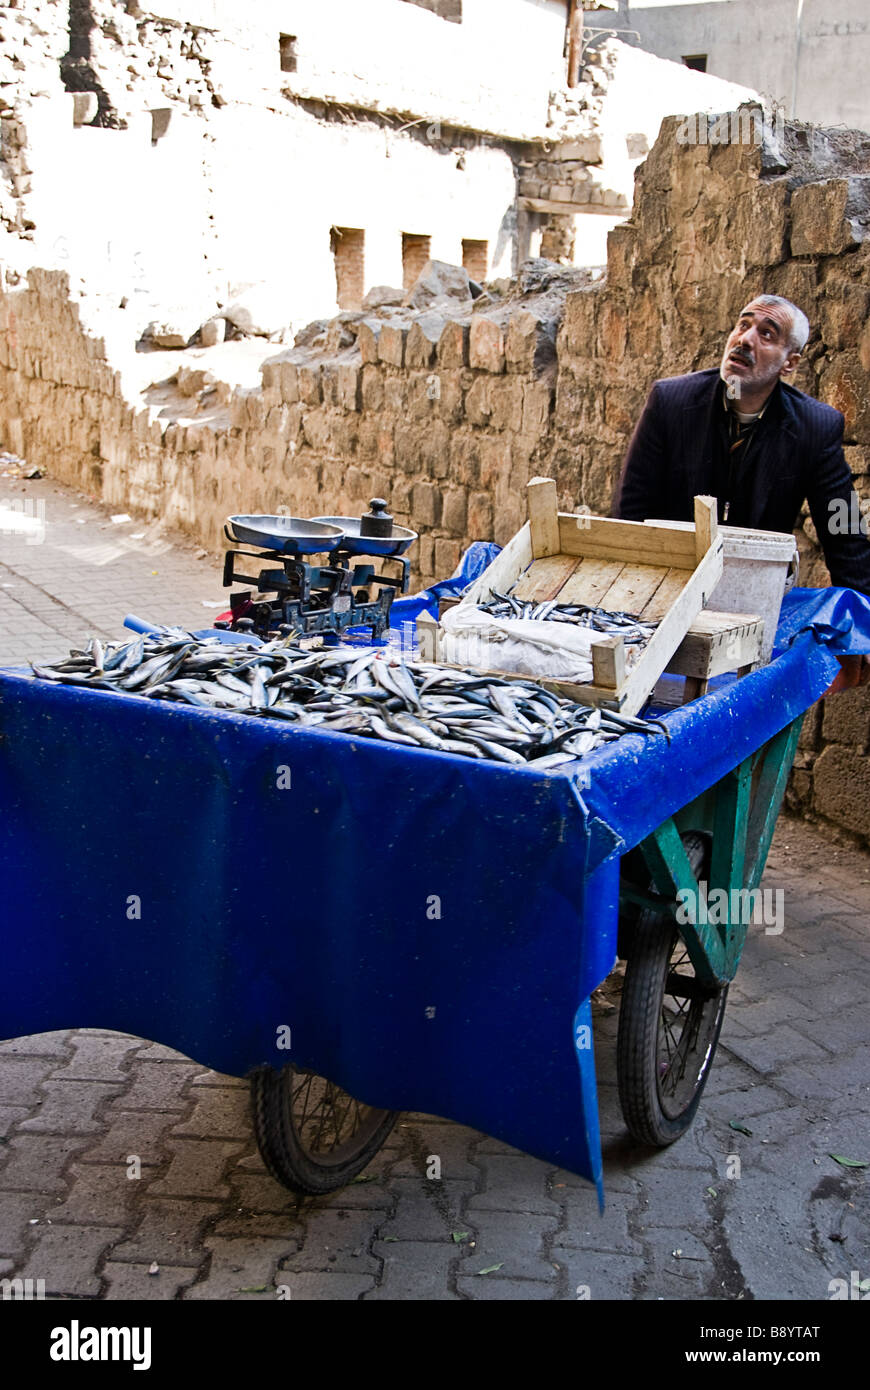 Man selling fish in the streets of Diyarbakir, Turkey, Asia - Stock Image